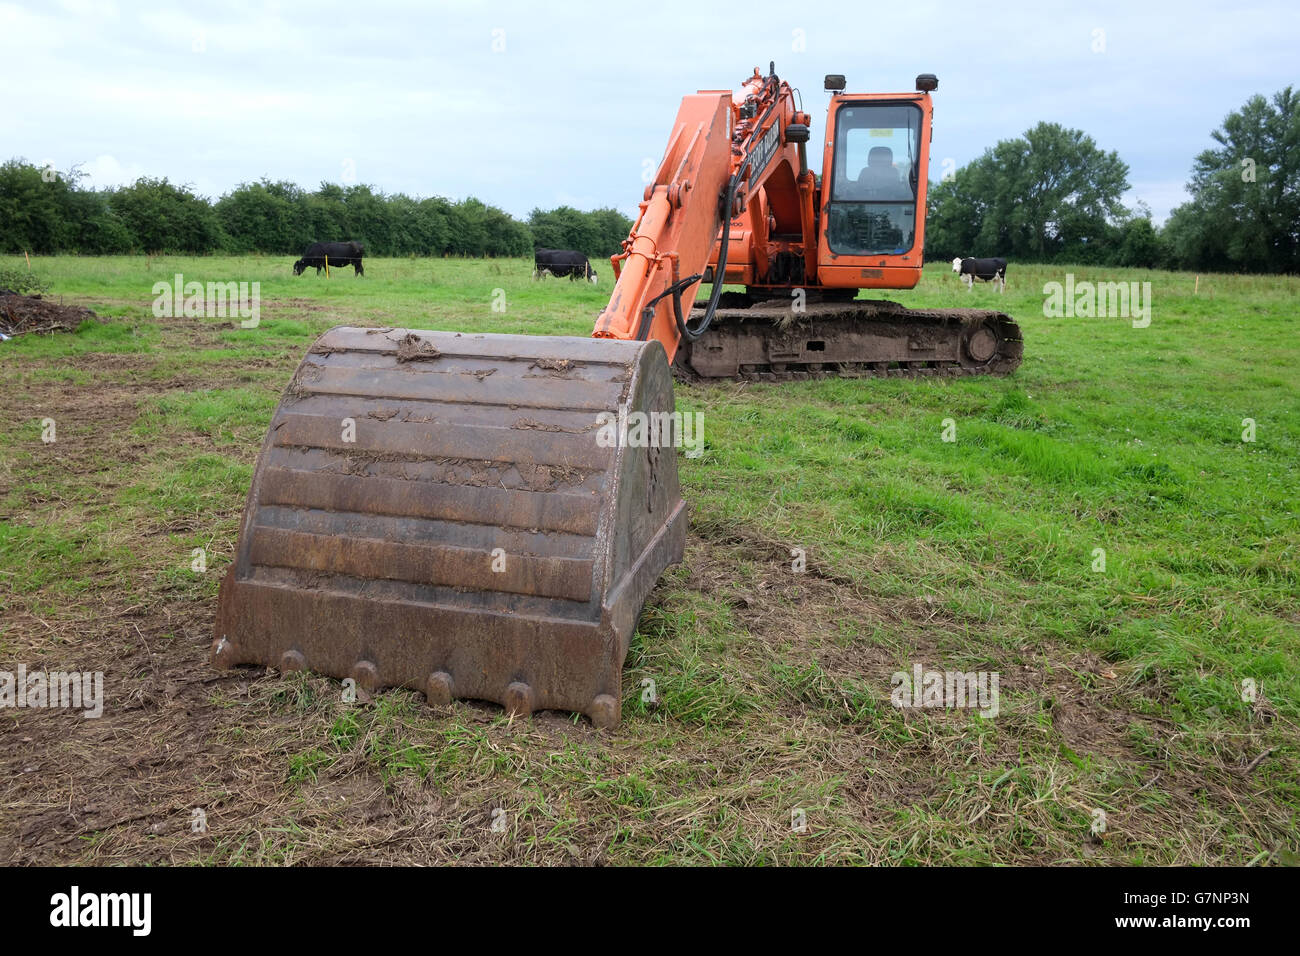 Orange 360 machine or digger being used for agricultural ditch or rhyne clearance in Somerset near Cheddar. June Stock Photo